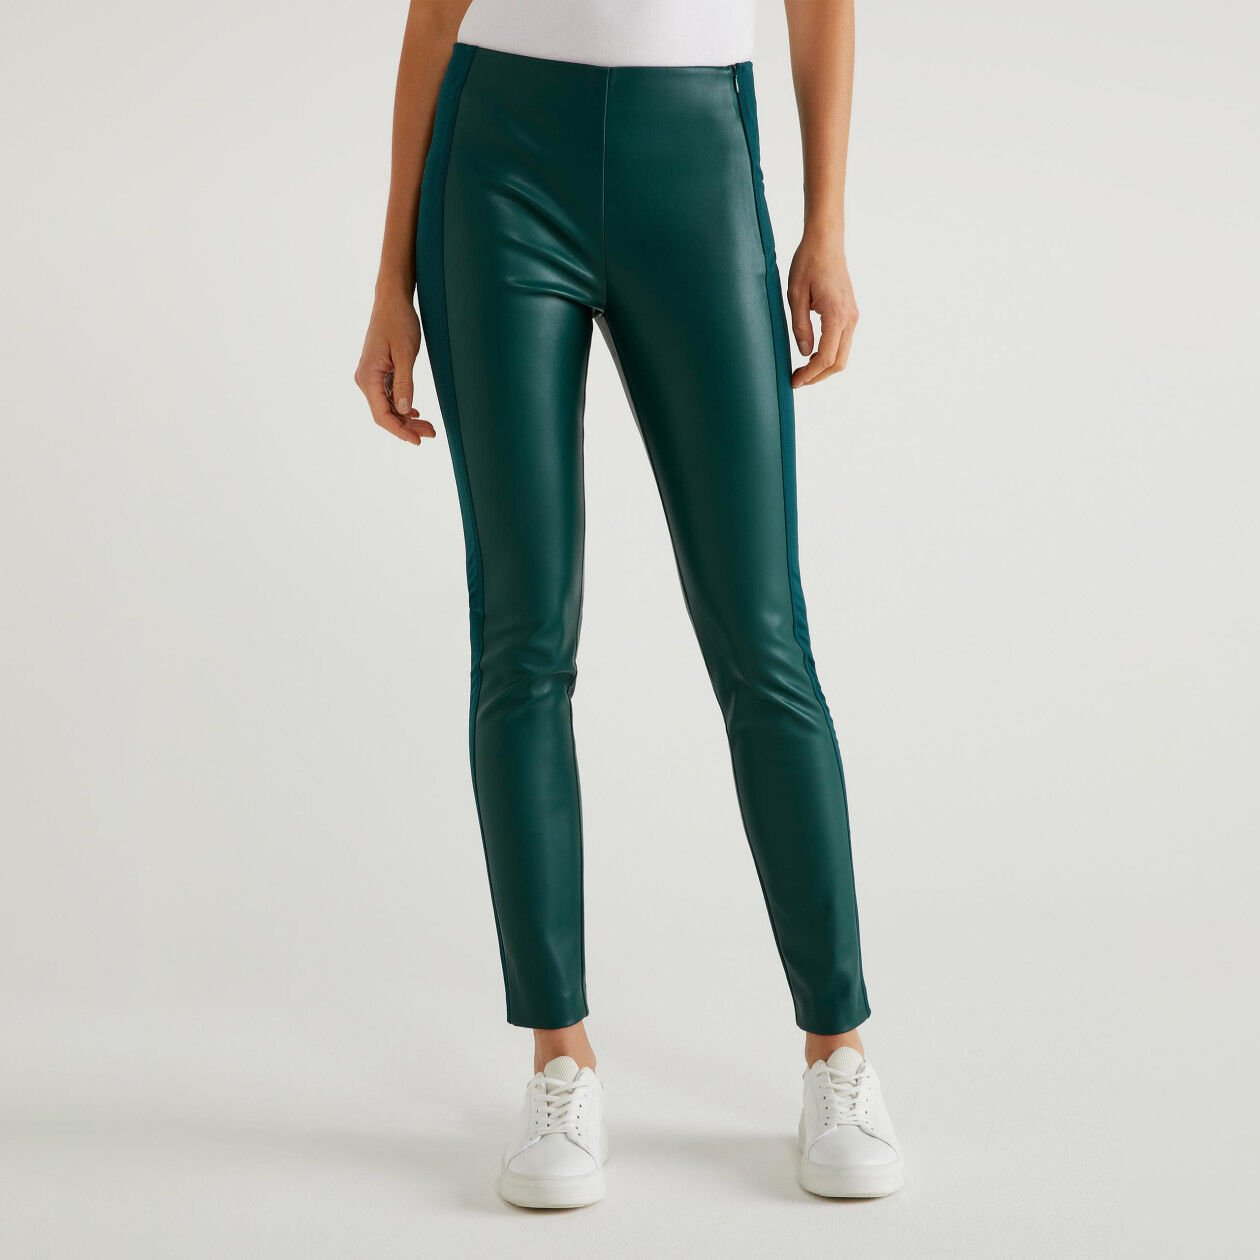 Leather look trousers